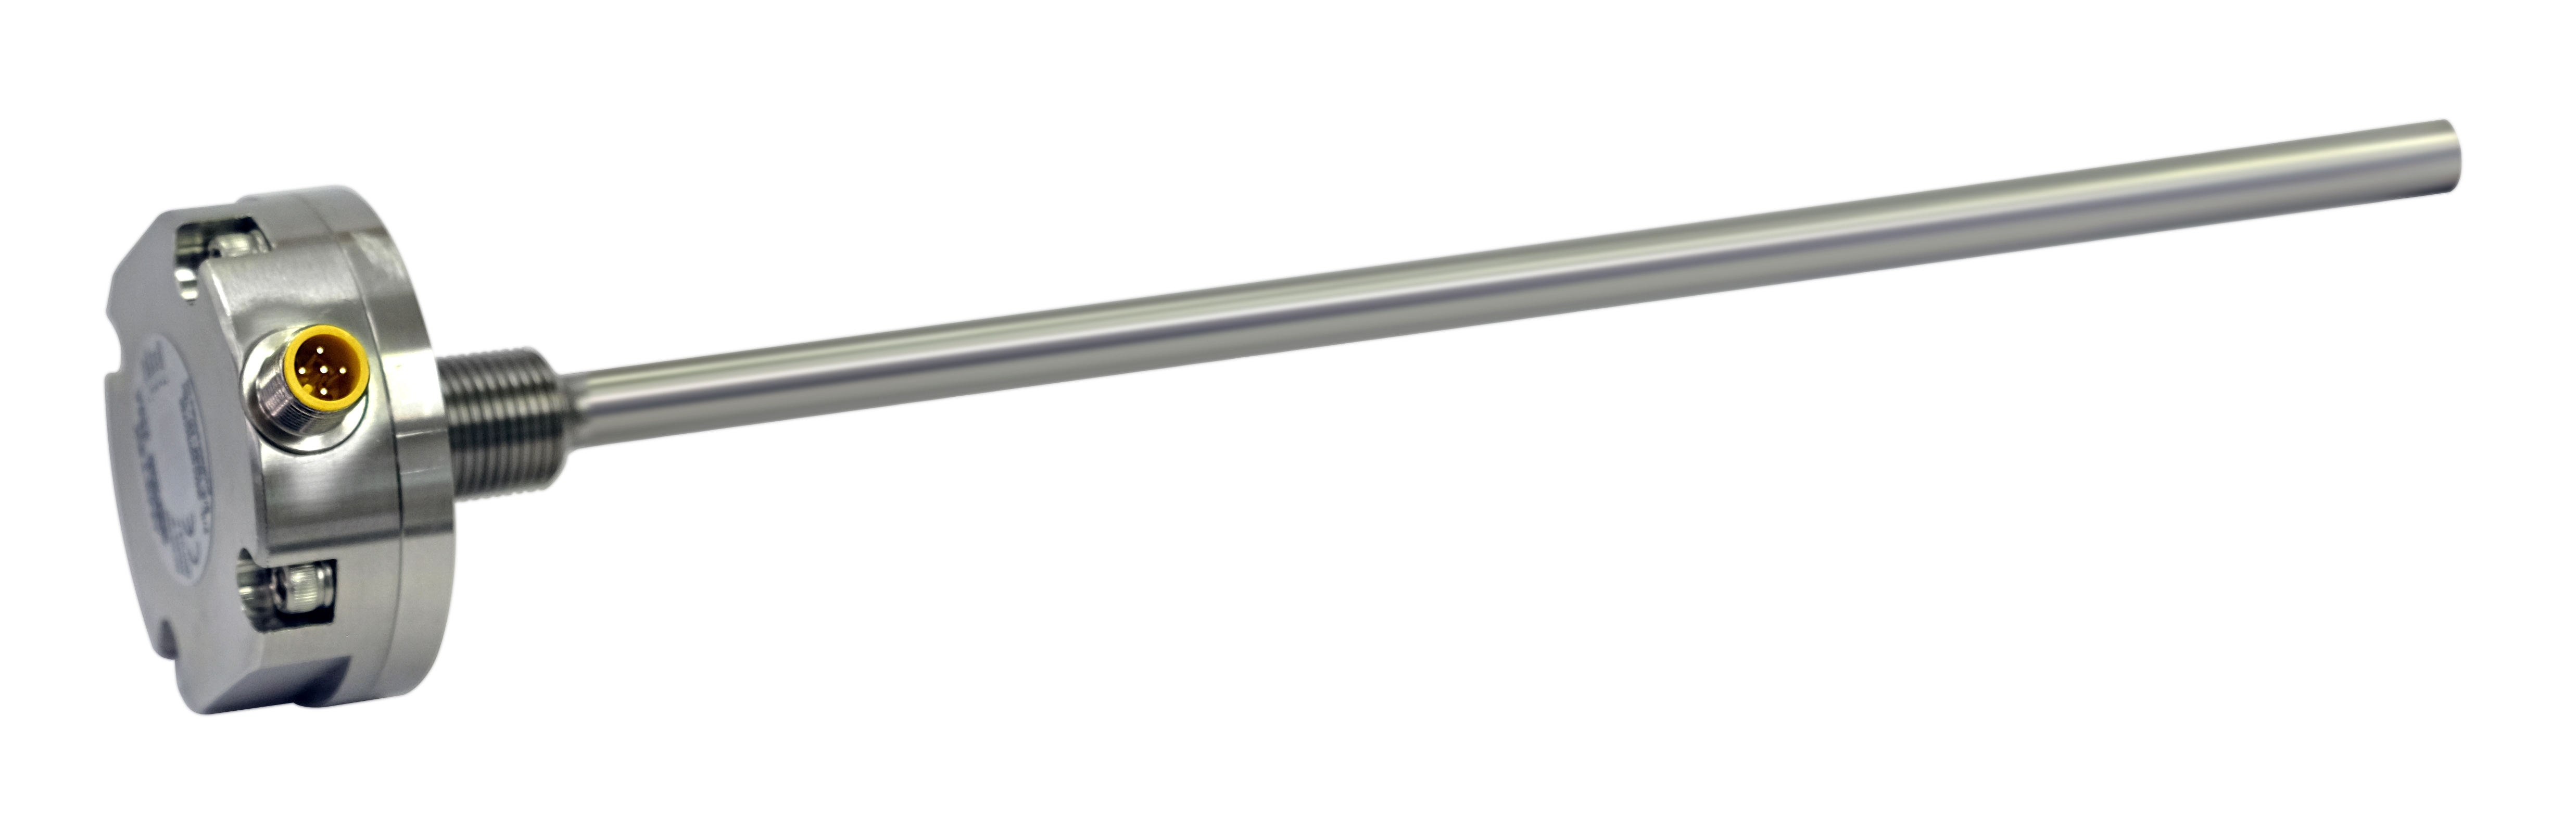 New Gemco® Design, High Accuracy, Simple Installation and Service on Linear Displacement Transducers